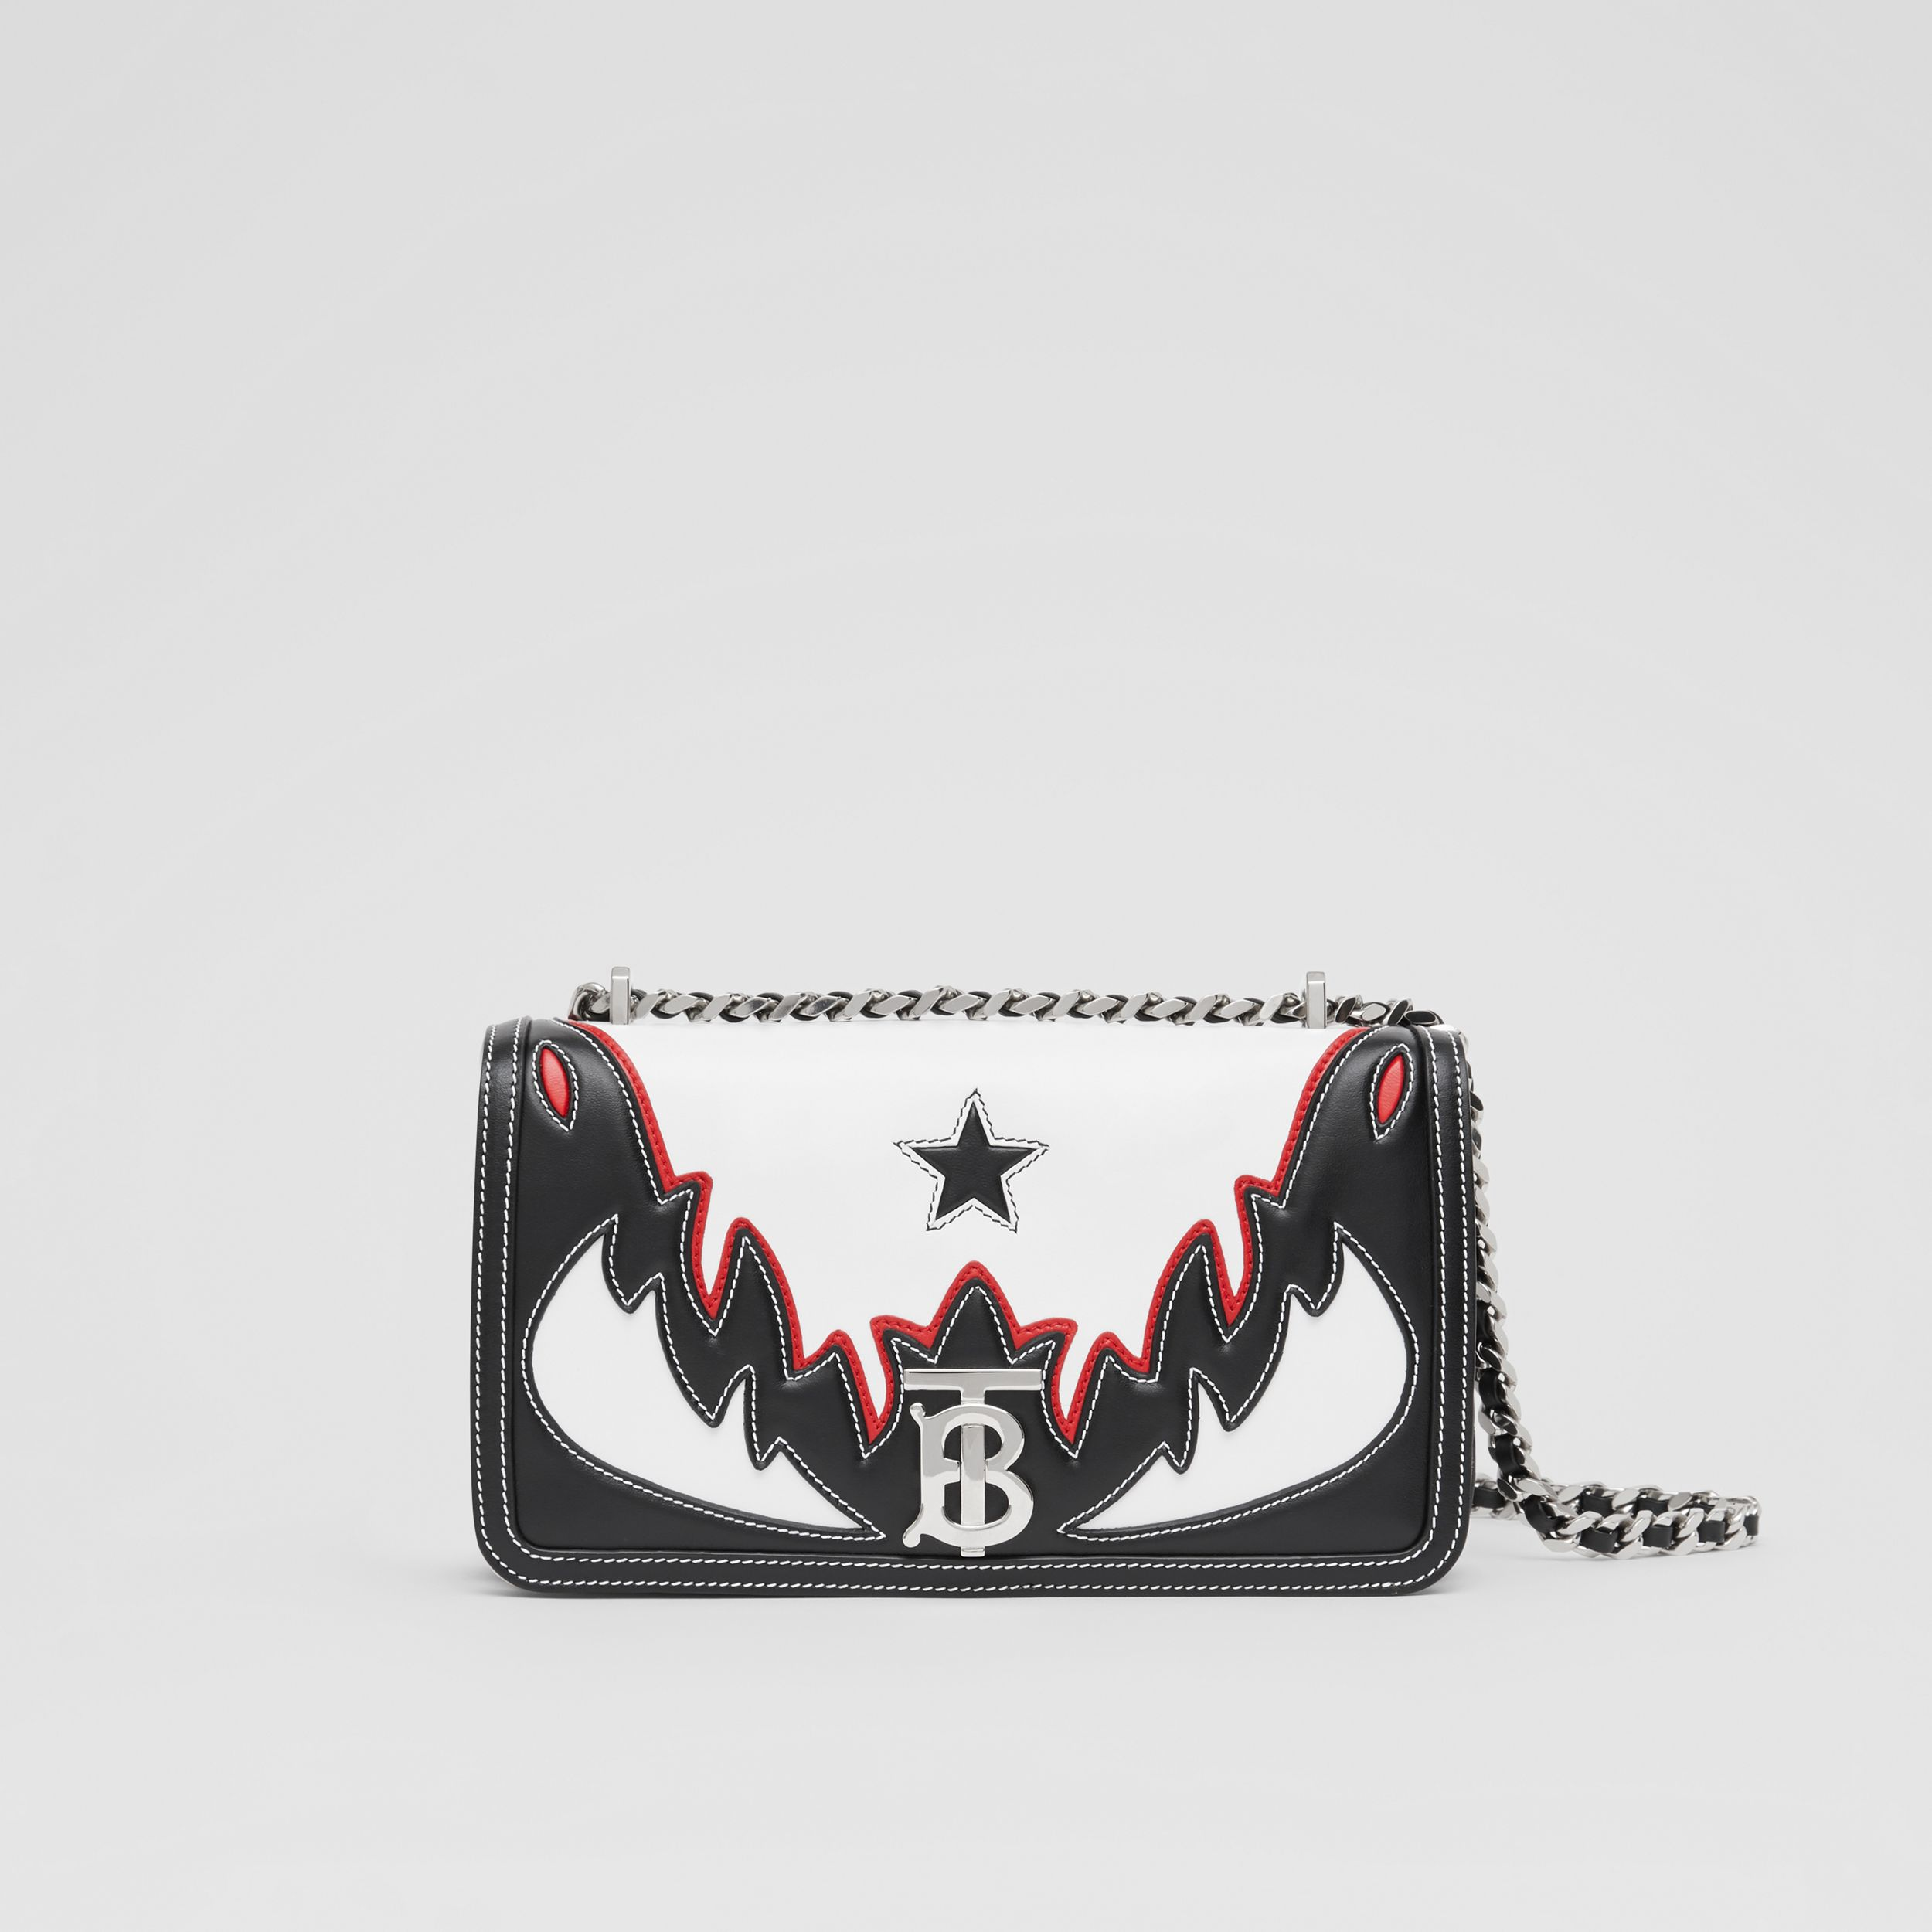 Small Topstitch Appliqué Lola Bag – Online Exclusive in White/black/red - Women | Burberry - 1